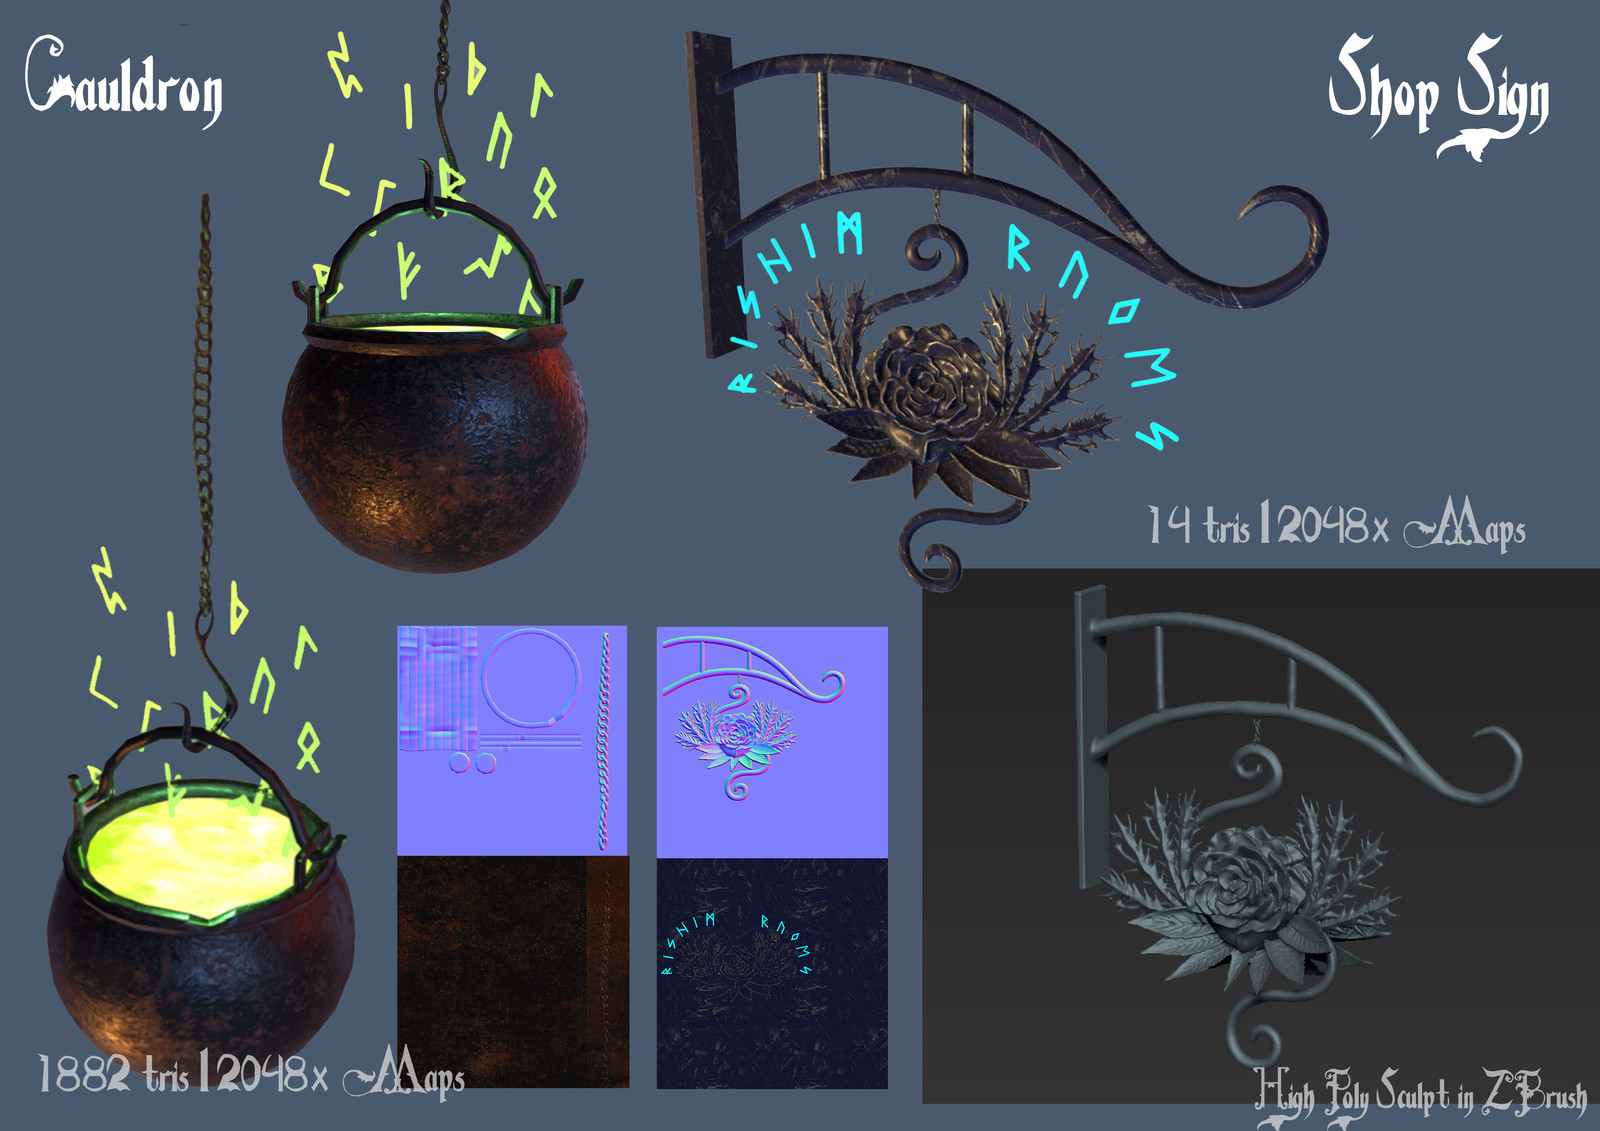 Cauldron and Shop Sign Model Sheet